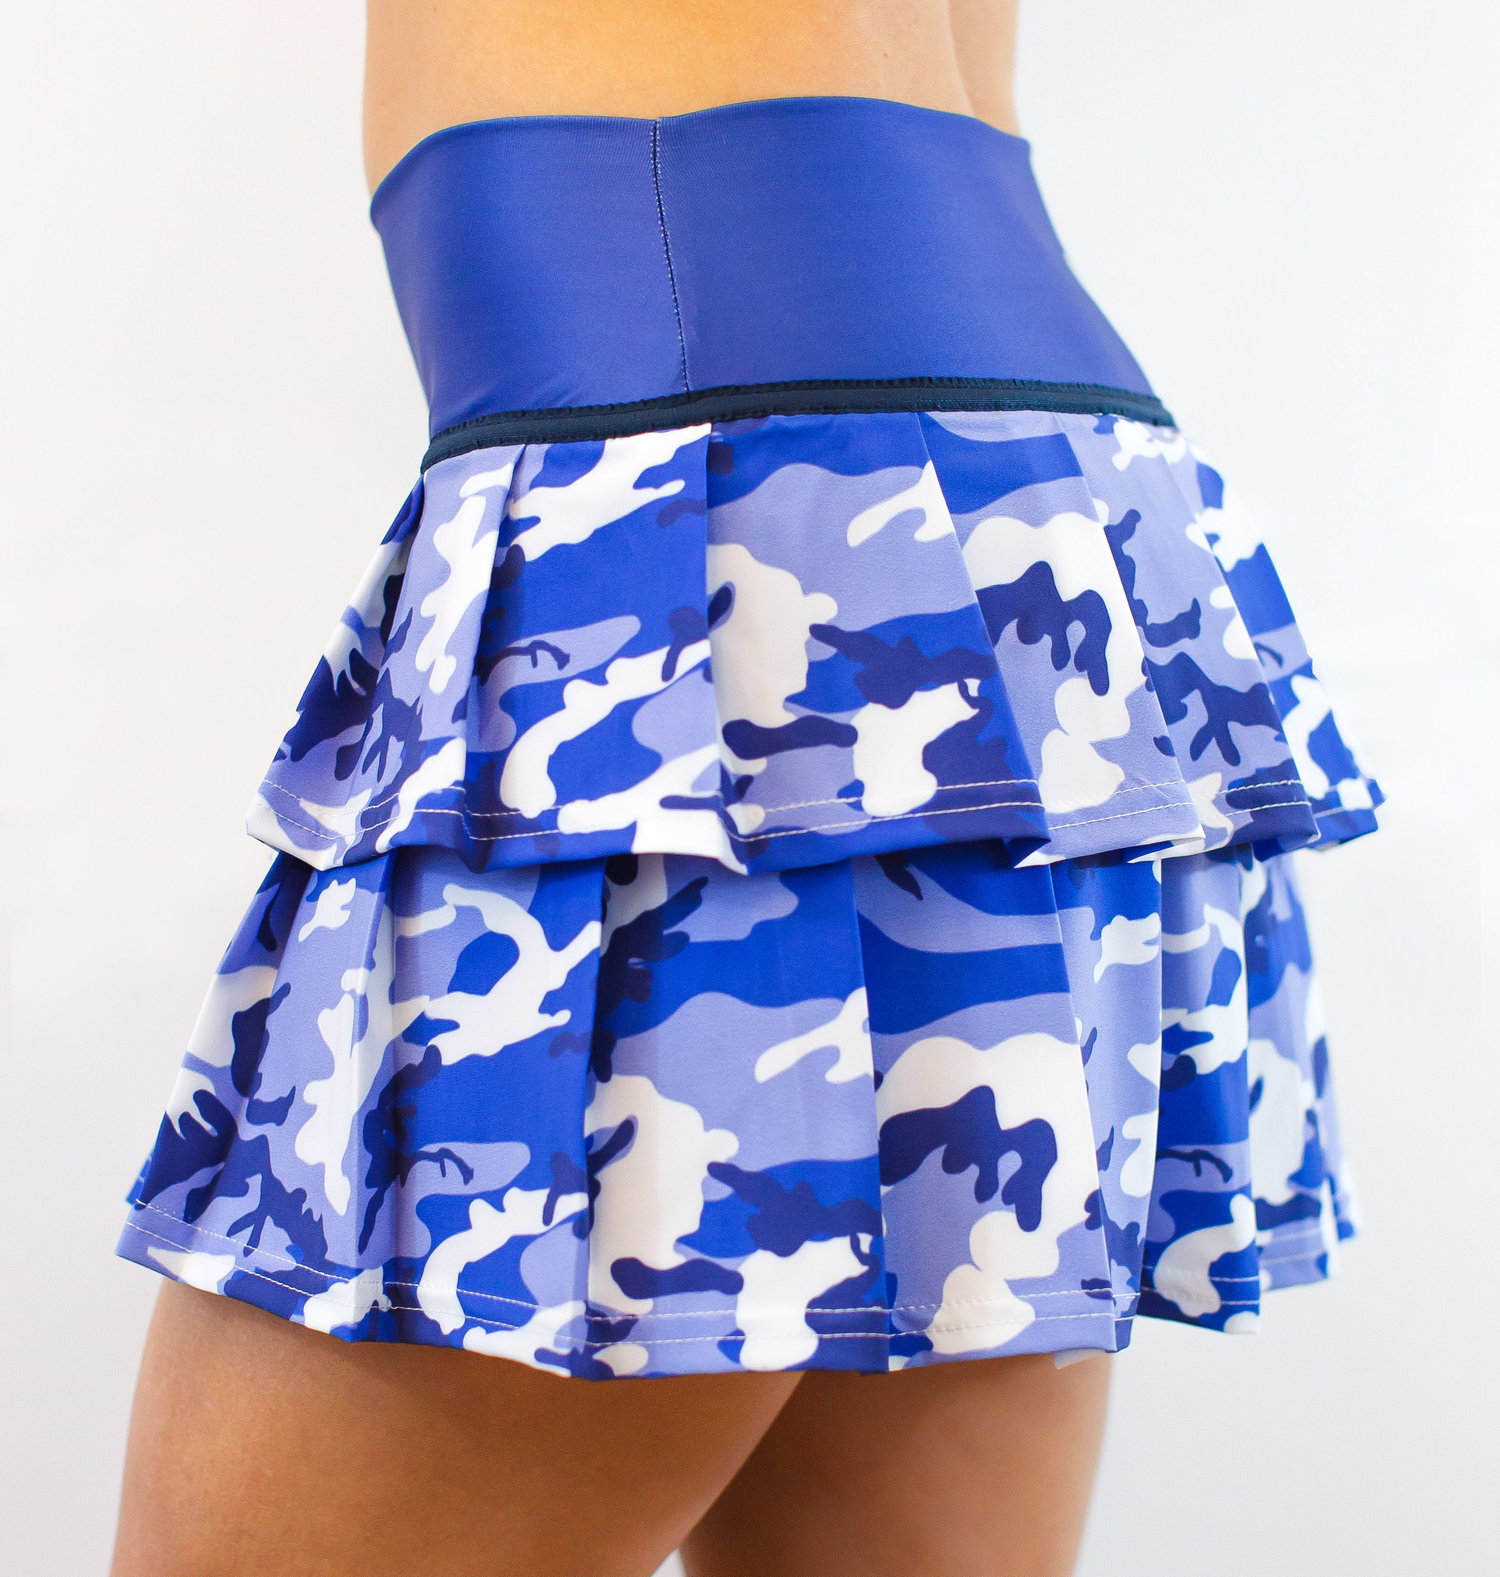 473c1580e ** New Style ** LISA 2 TIER BLUE CAMO — Tennis Clothes, Faye+Florie